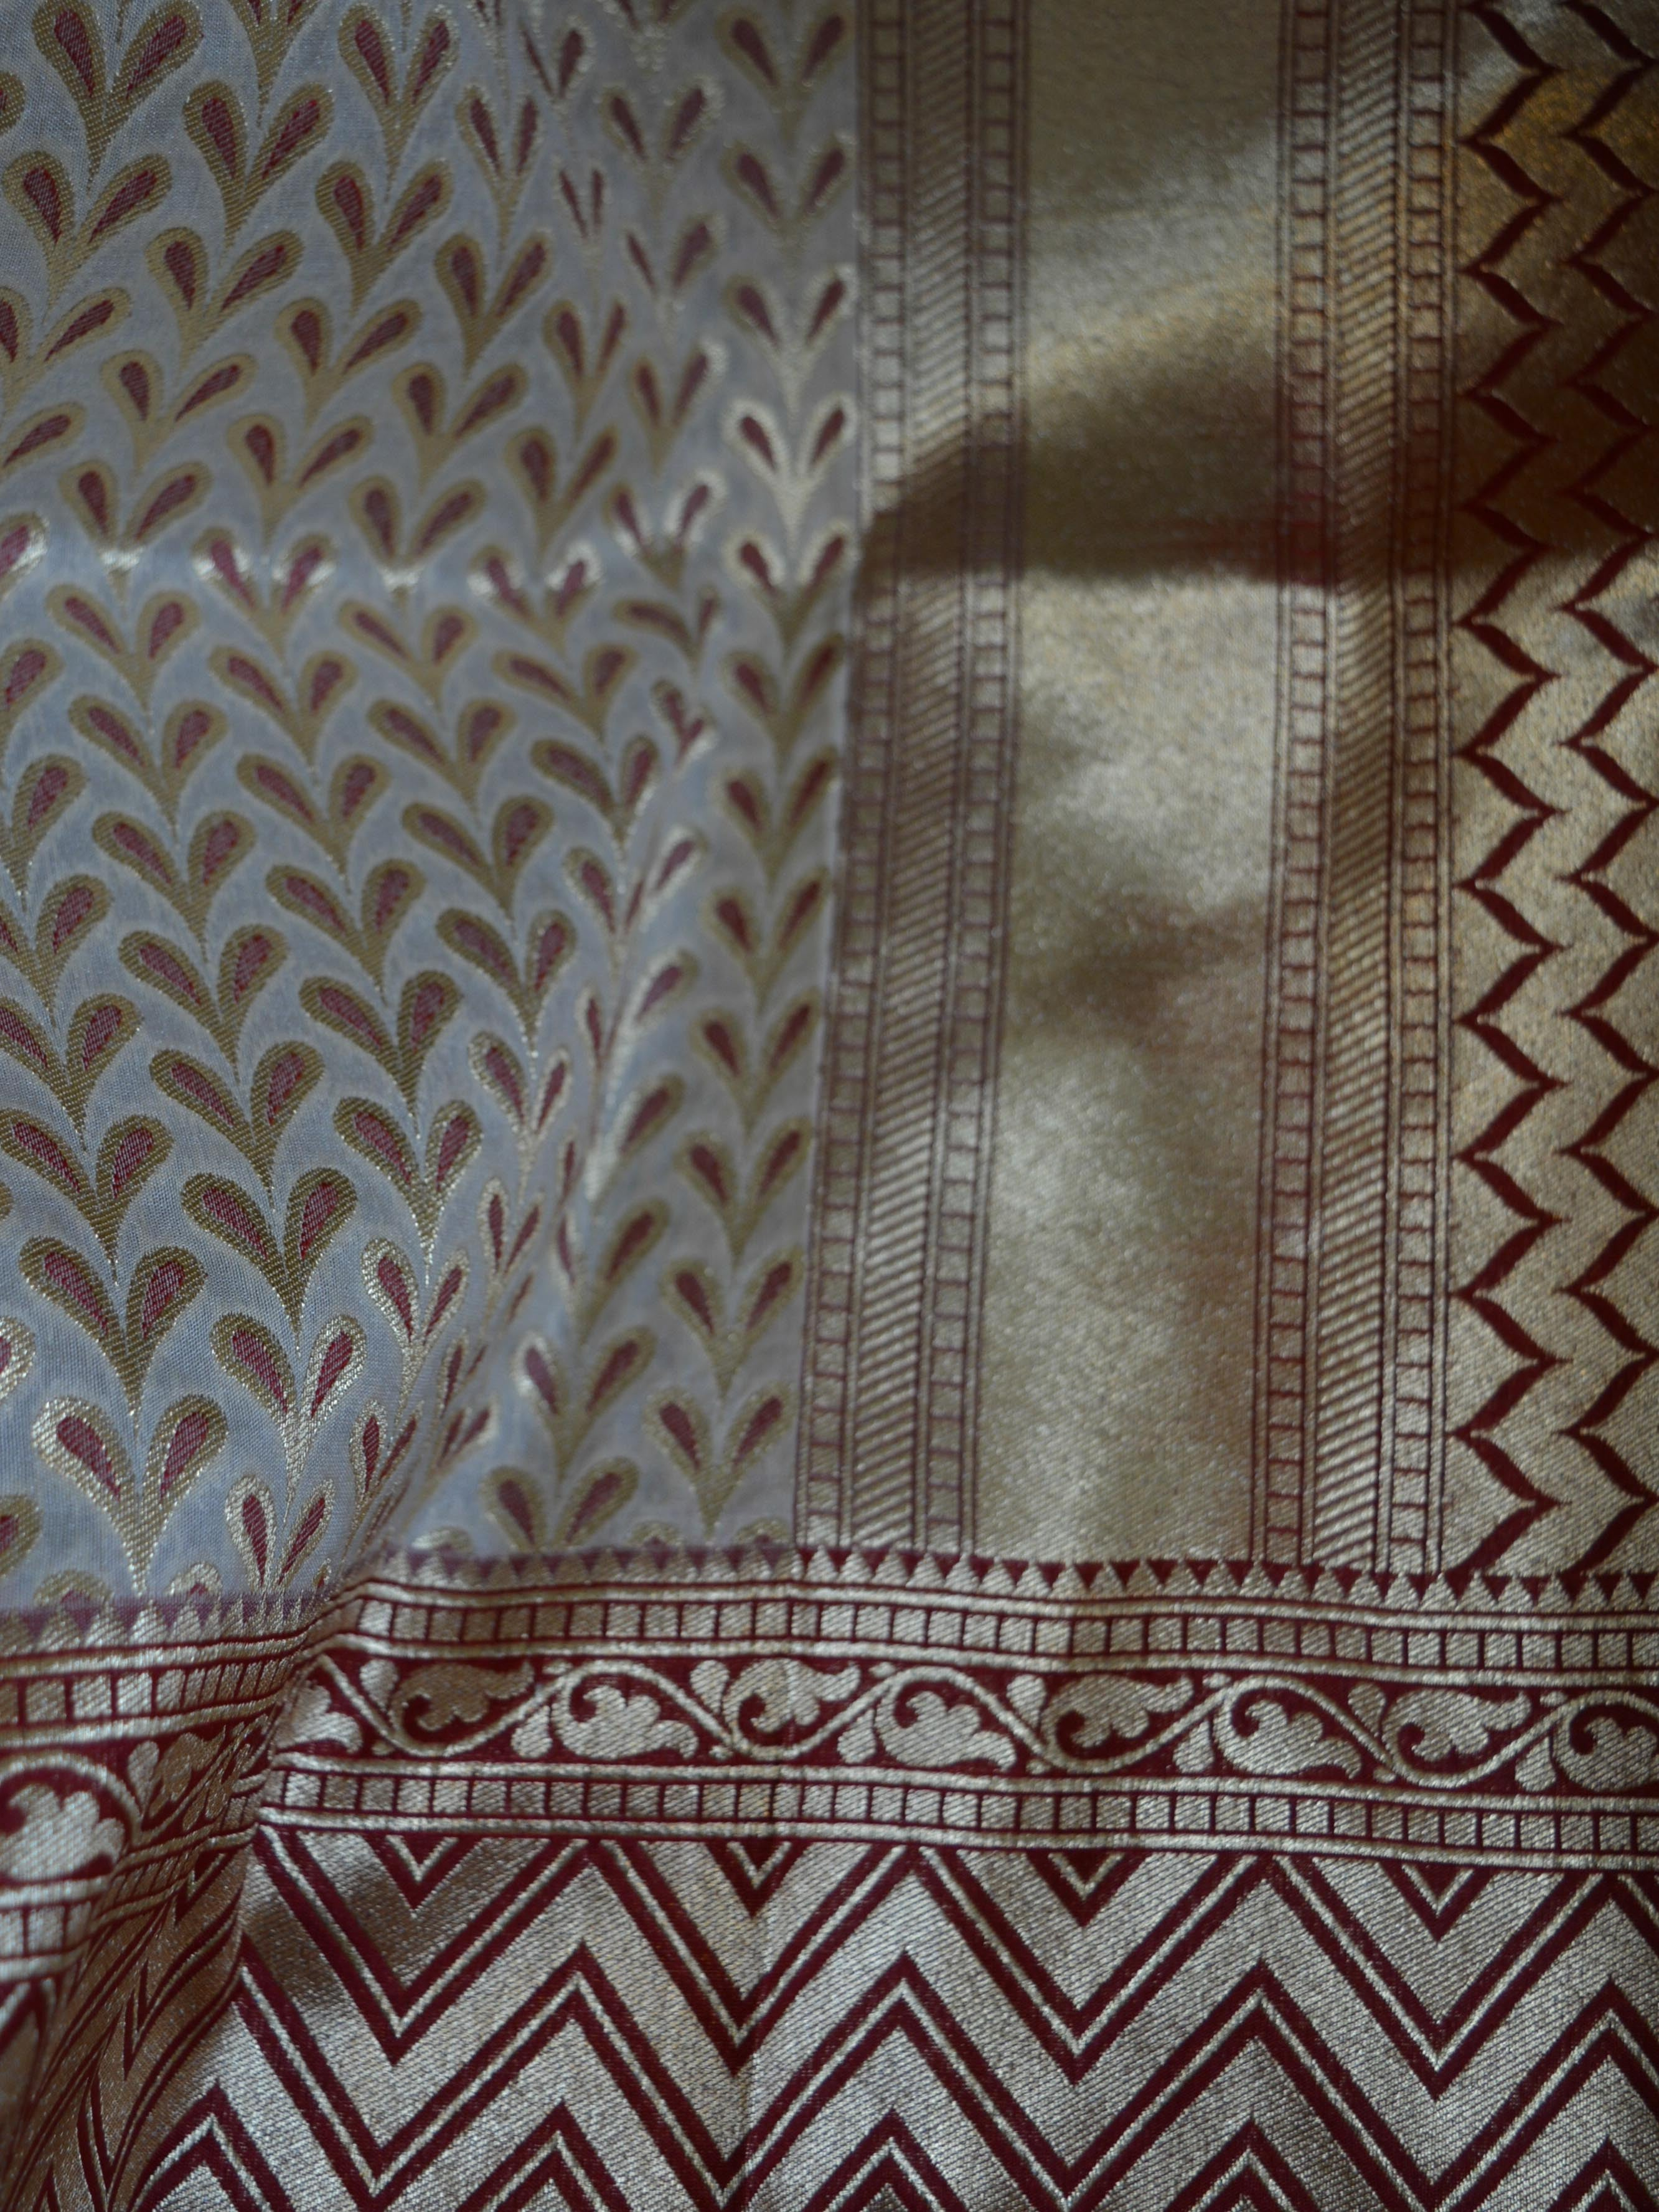 Banarasee Handwoven Art Silk Leaf & Zig-Zag Motif Saree Half & Half-Off White & Maroon